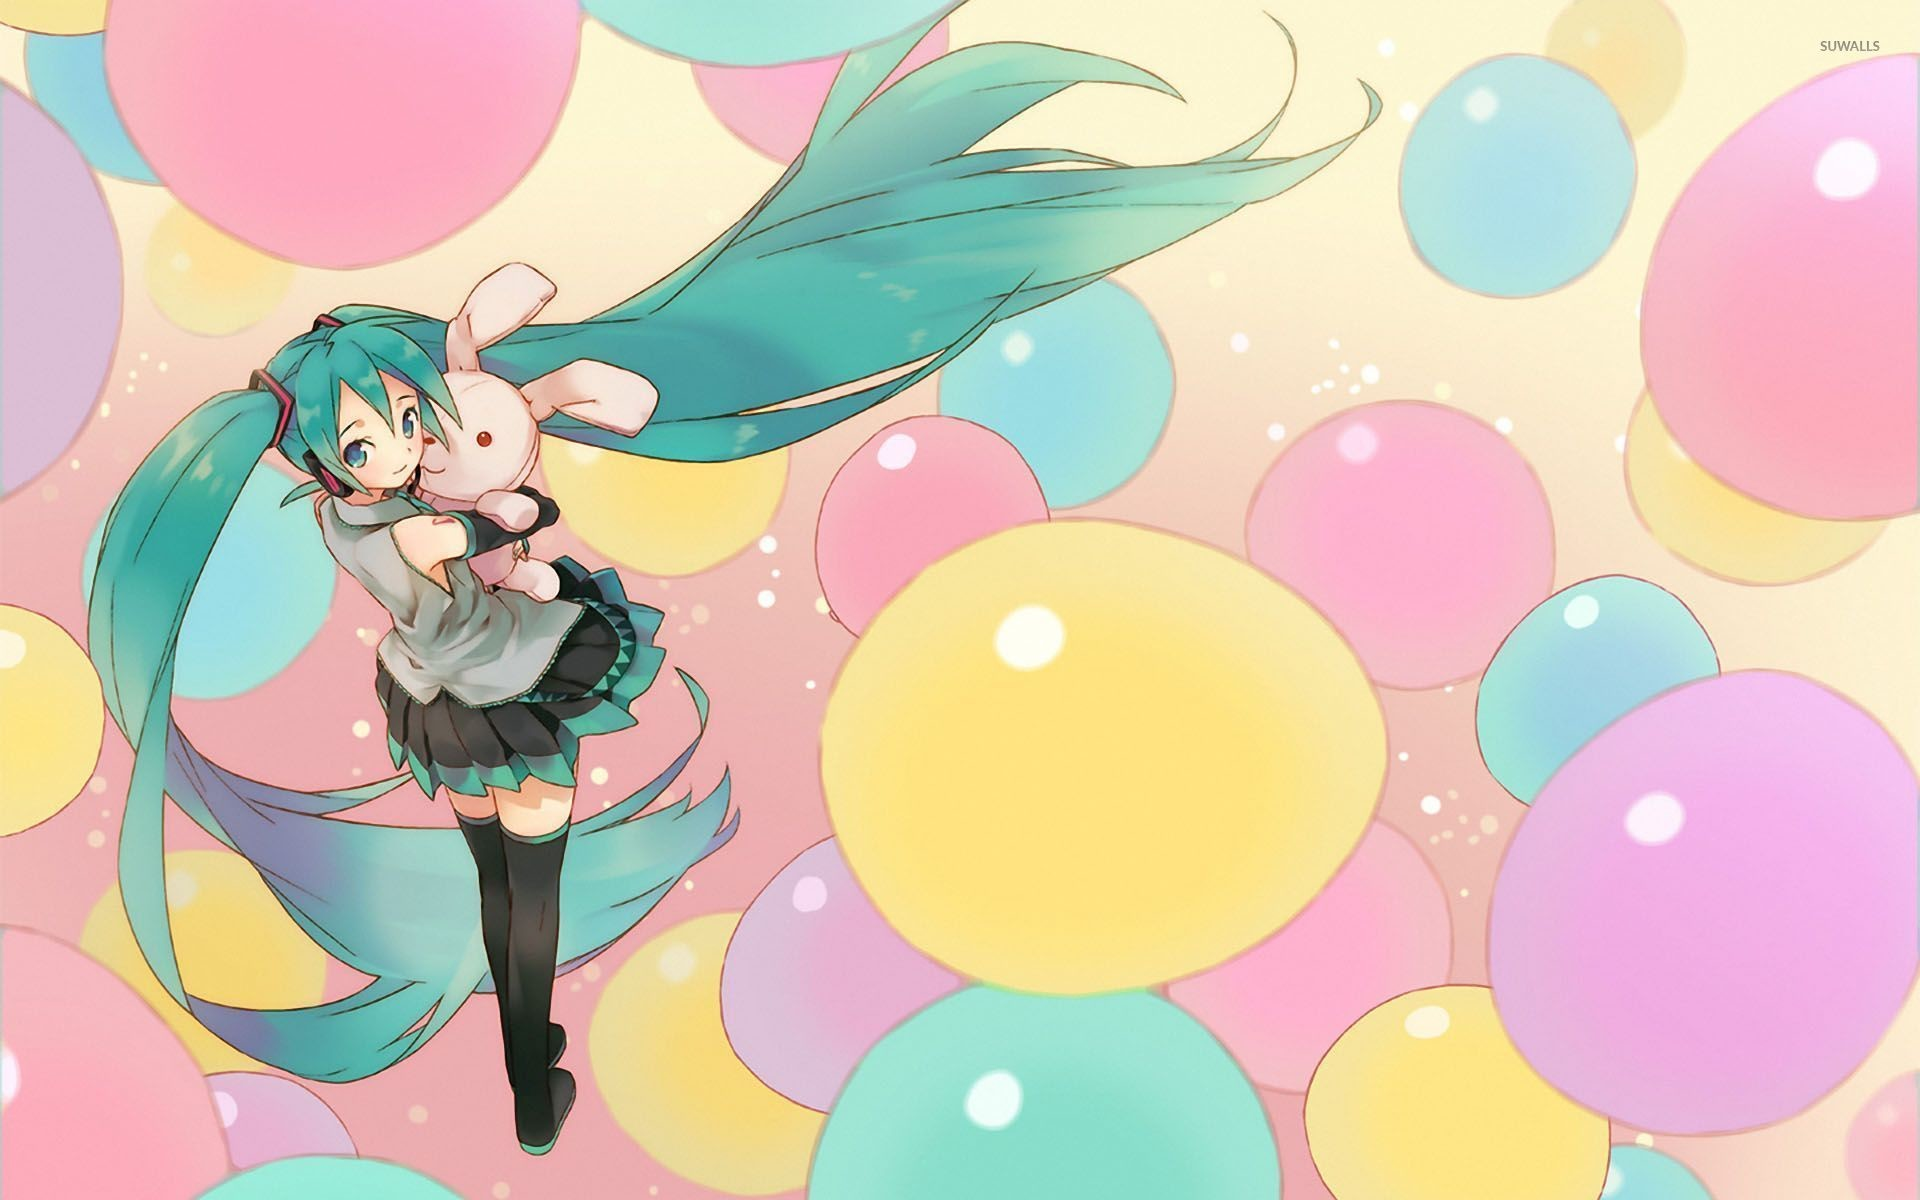 1920x1200 Hatsune Miku between the colorful balloons - Vocaloid wallpaper